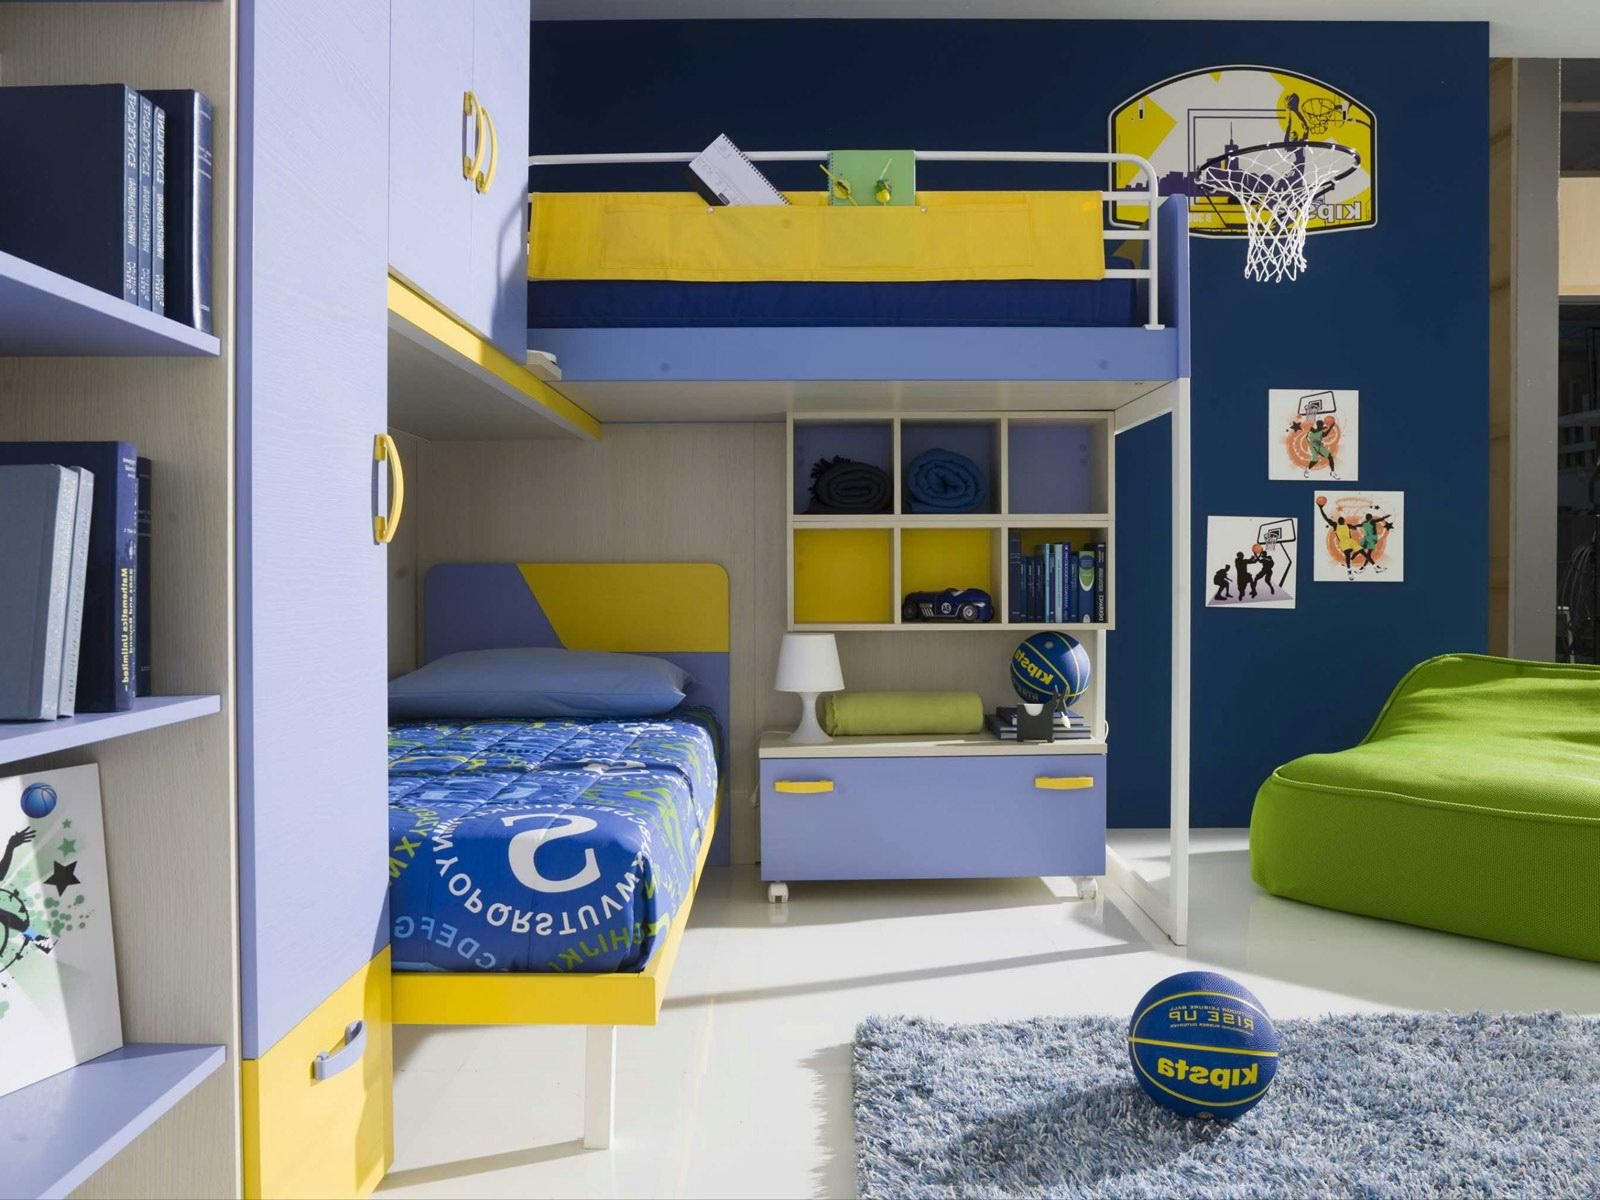 Bedroom interior for boys - Bedroom Interior For Boys 49